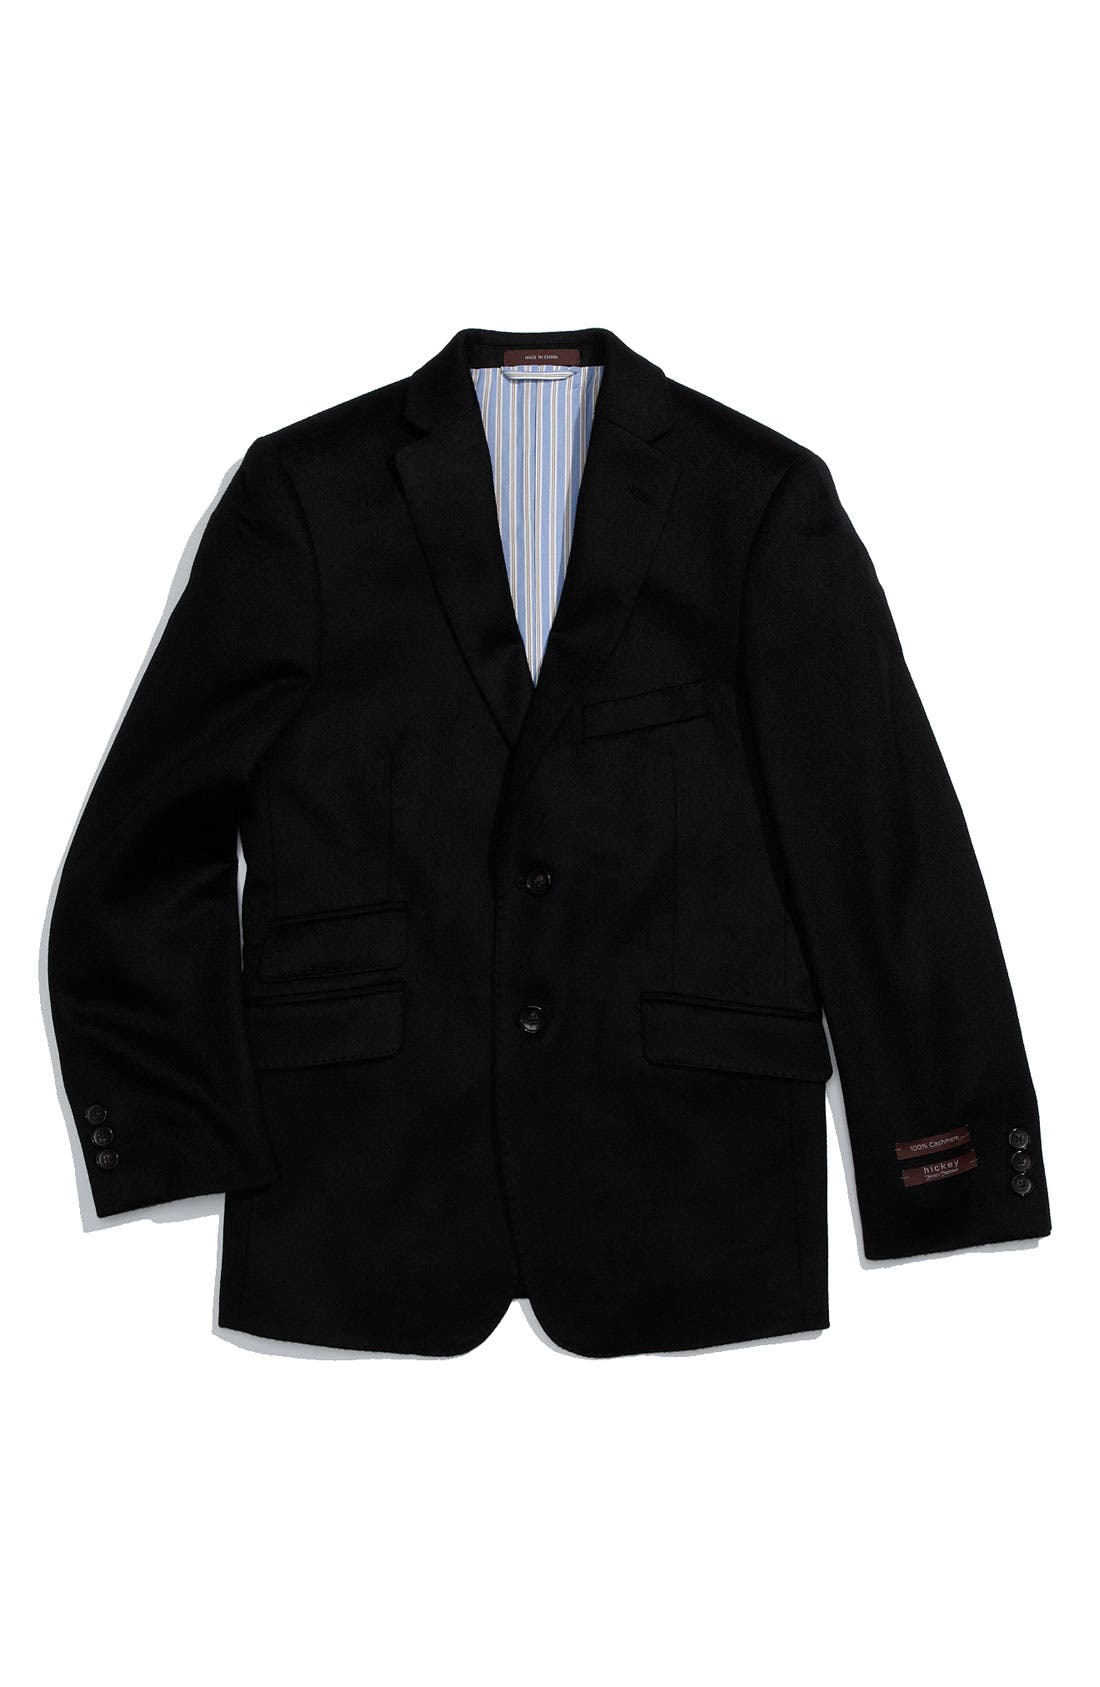 Alternate Image 1 Selected - Hickey Freeman Cashmere Sport Coat (Big Boys)